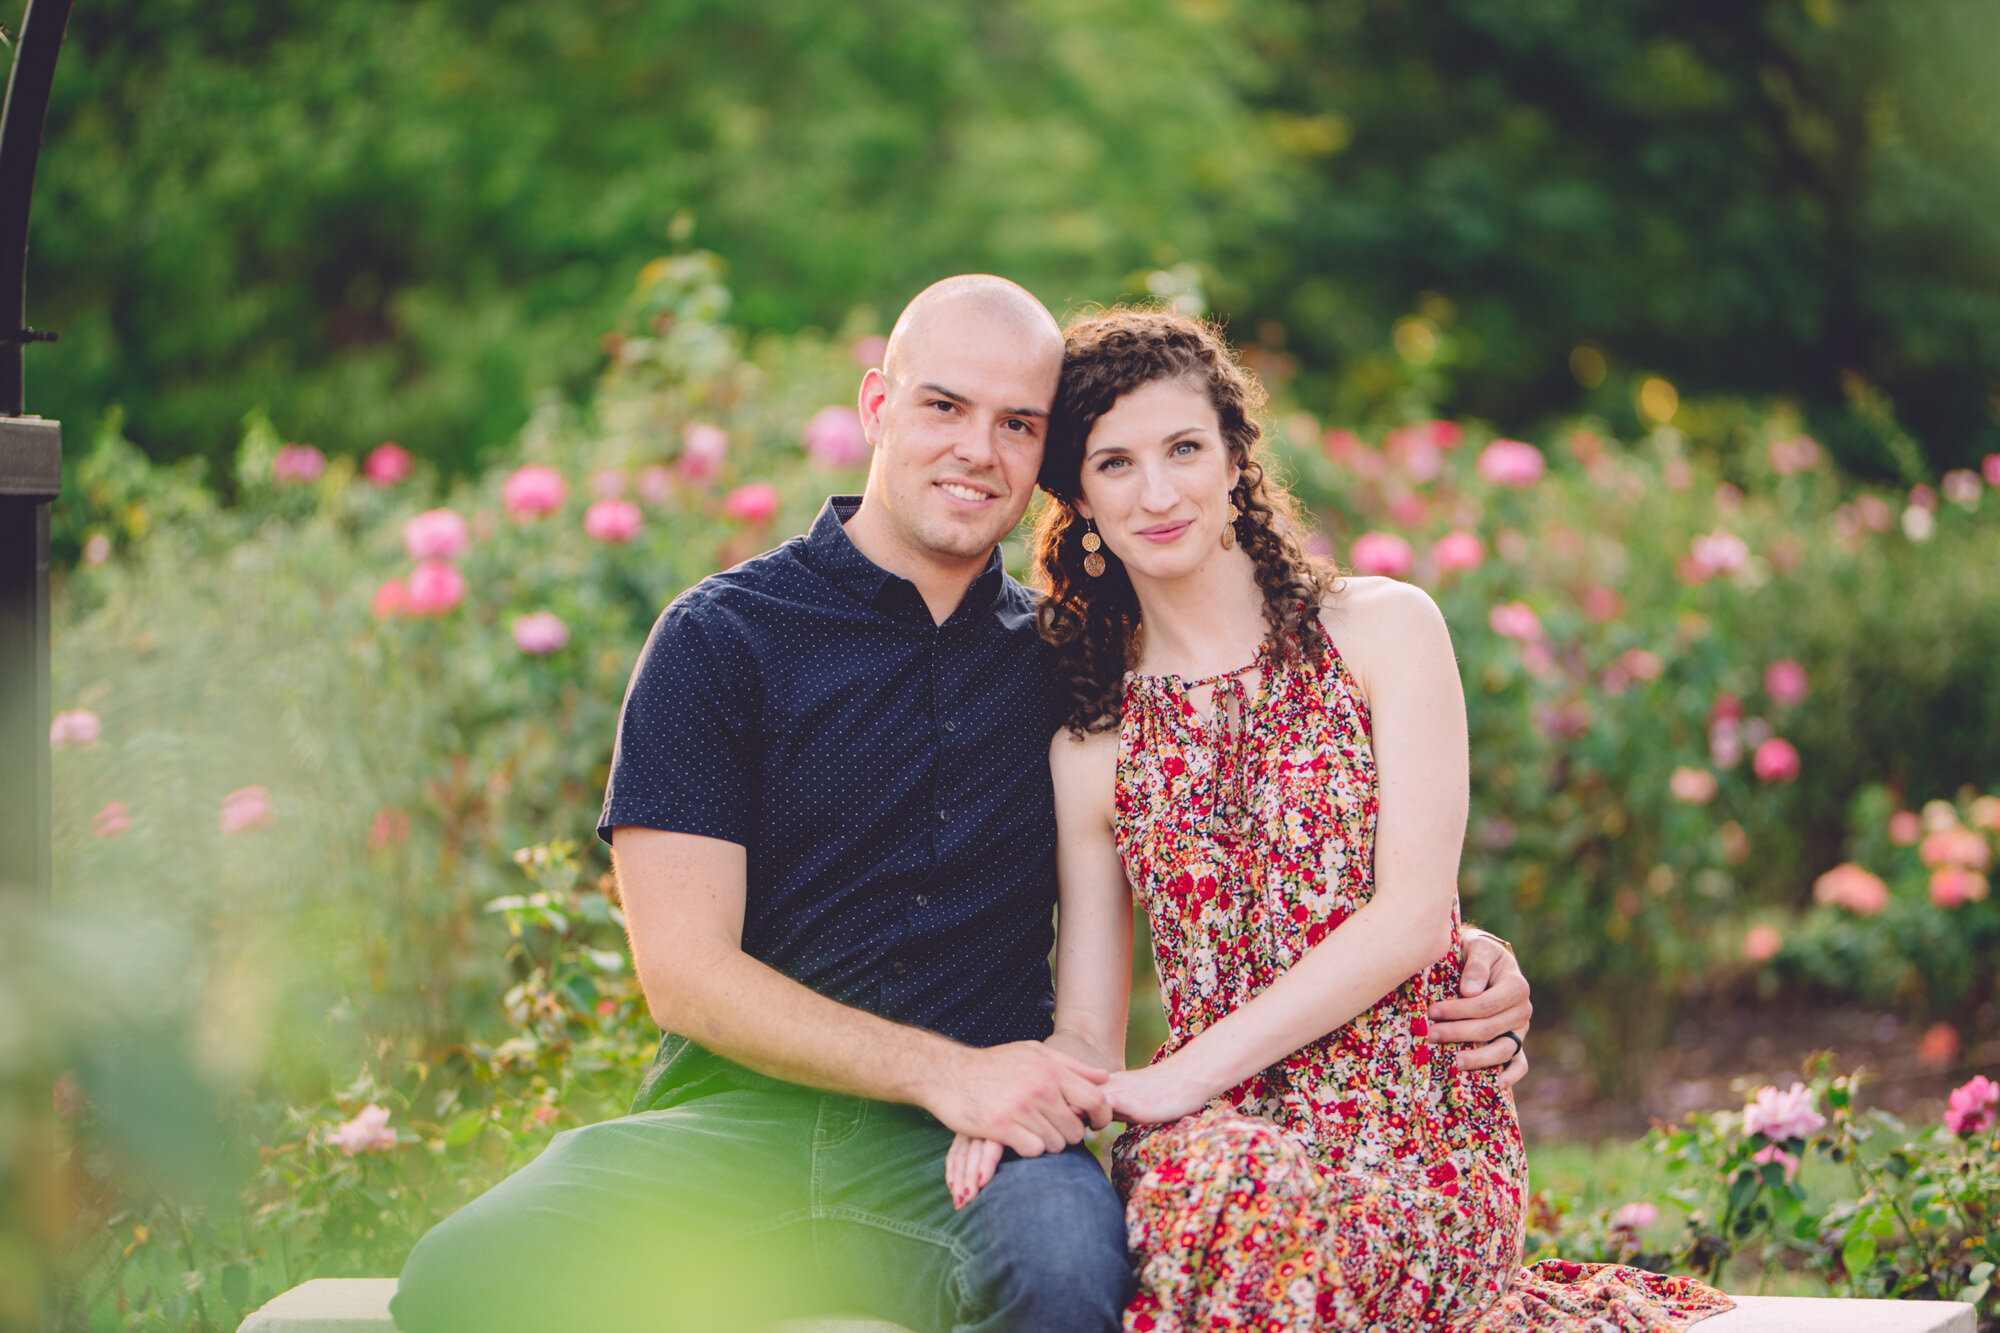 Bon Air Park Rose Garden Engagement Photos-13.jpg